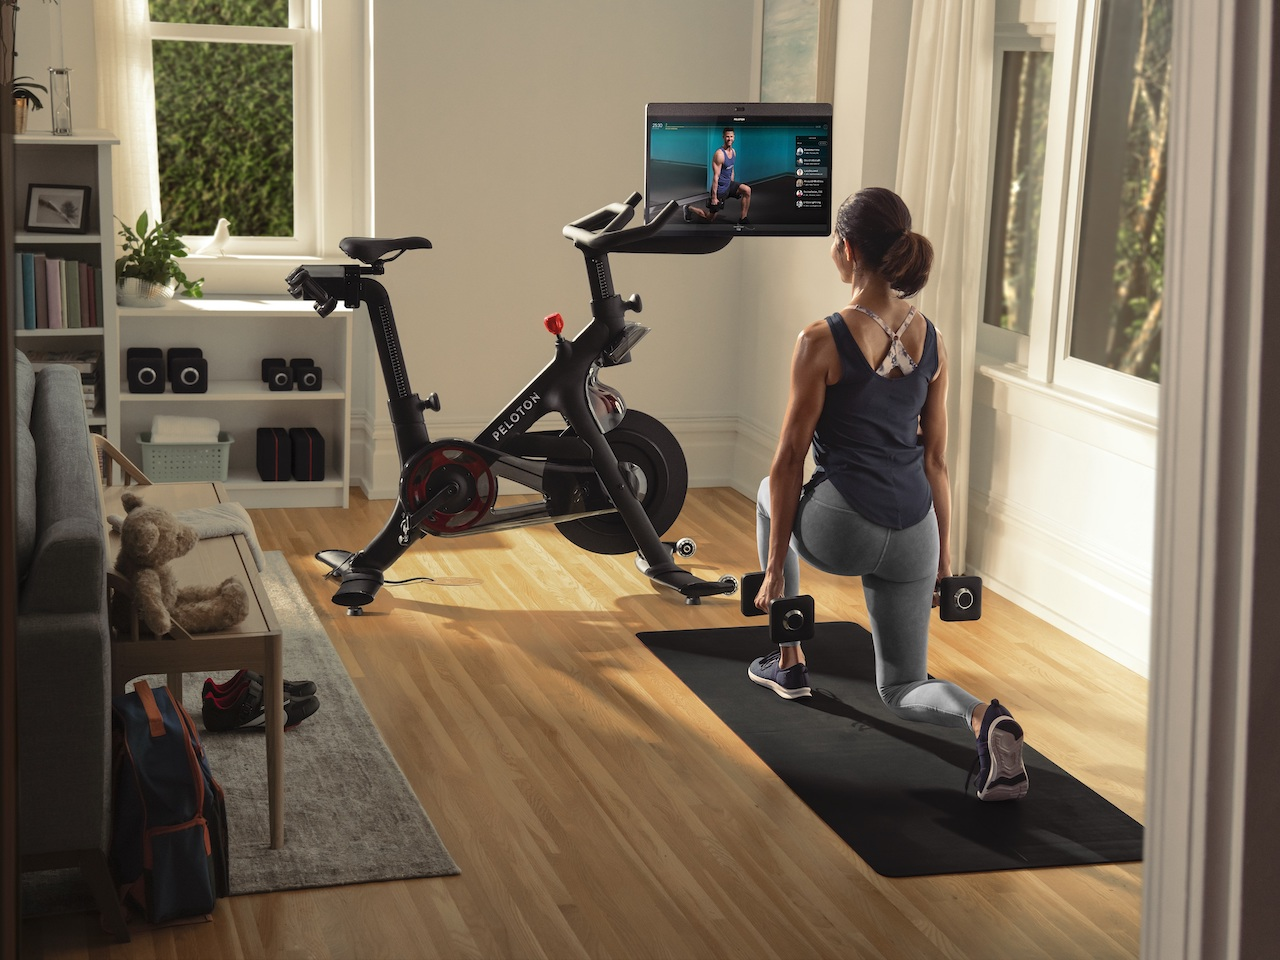 A woman doing a strength workout on the floor while looking at her Peloton screen